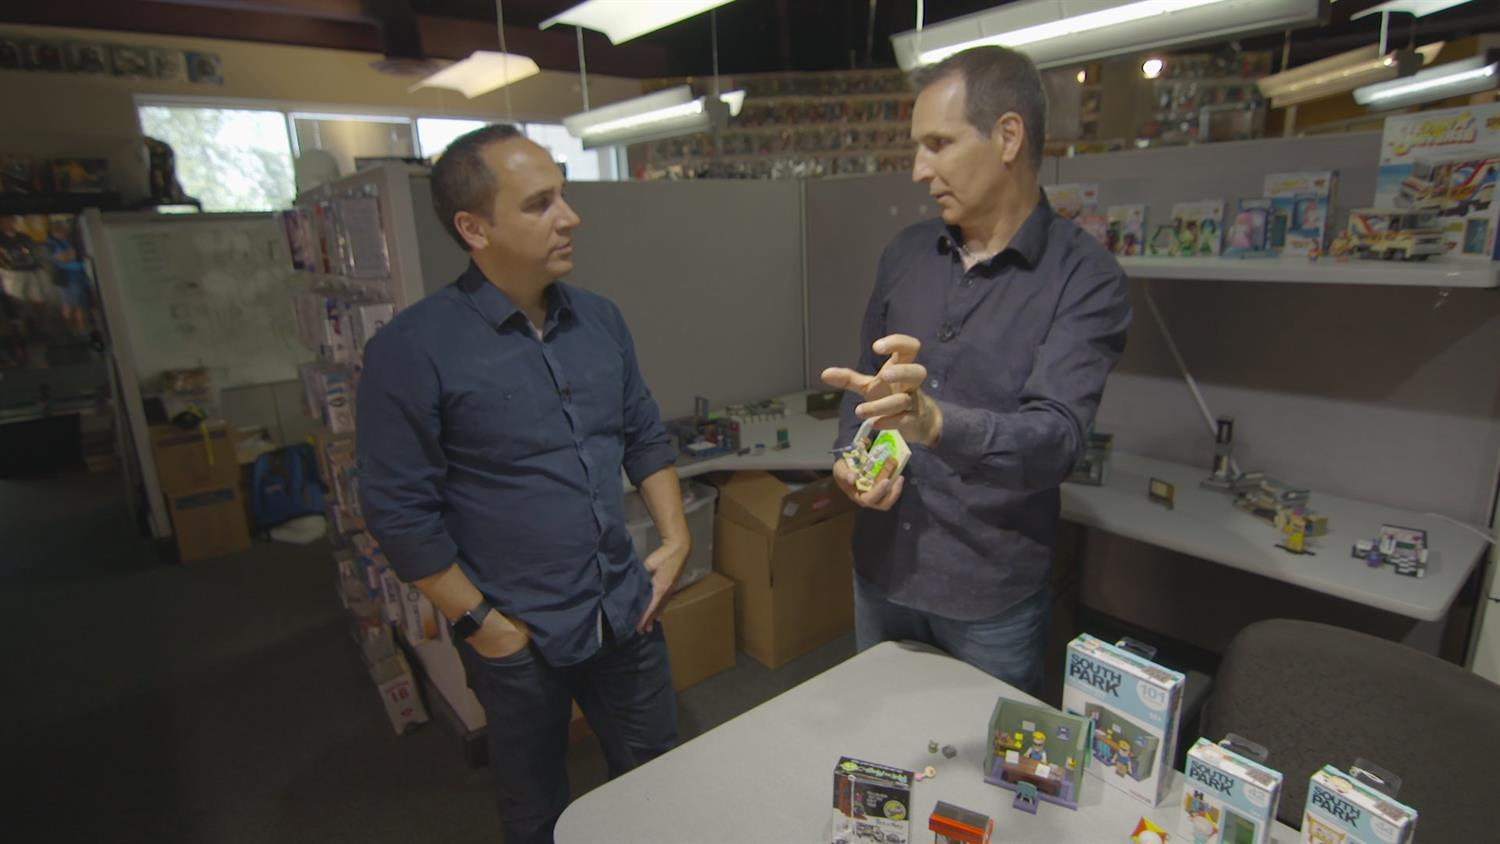 McFarlane Toys Office Tour: Todd McFarlane on How and Why He Makes Toys